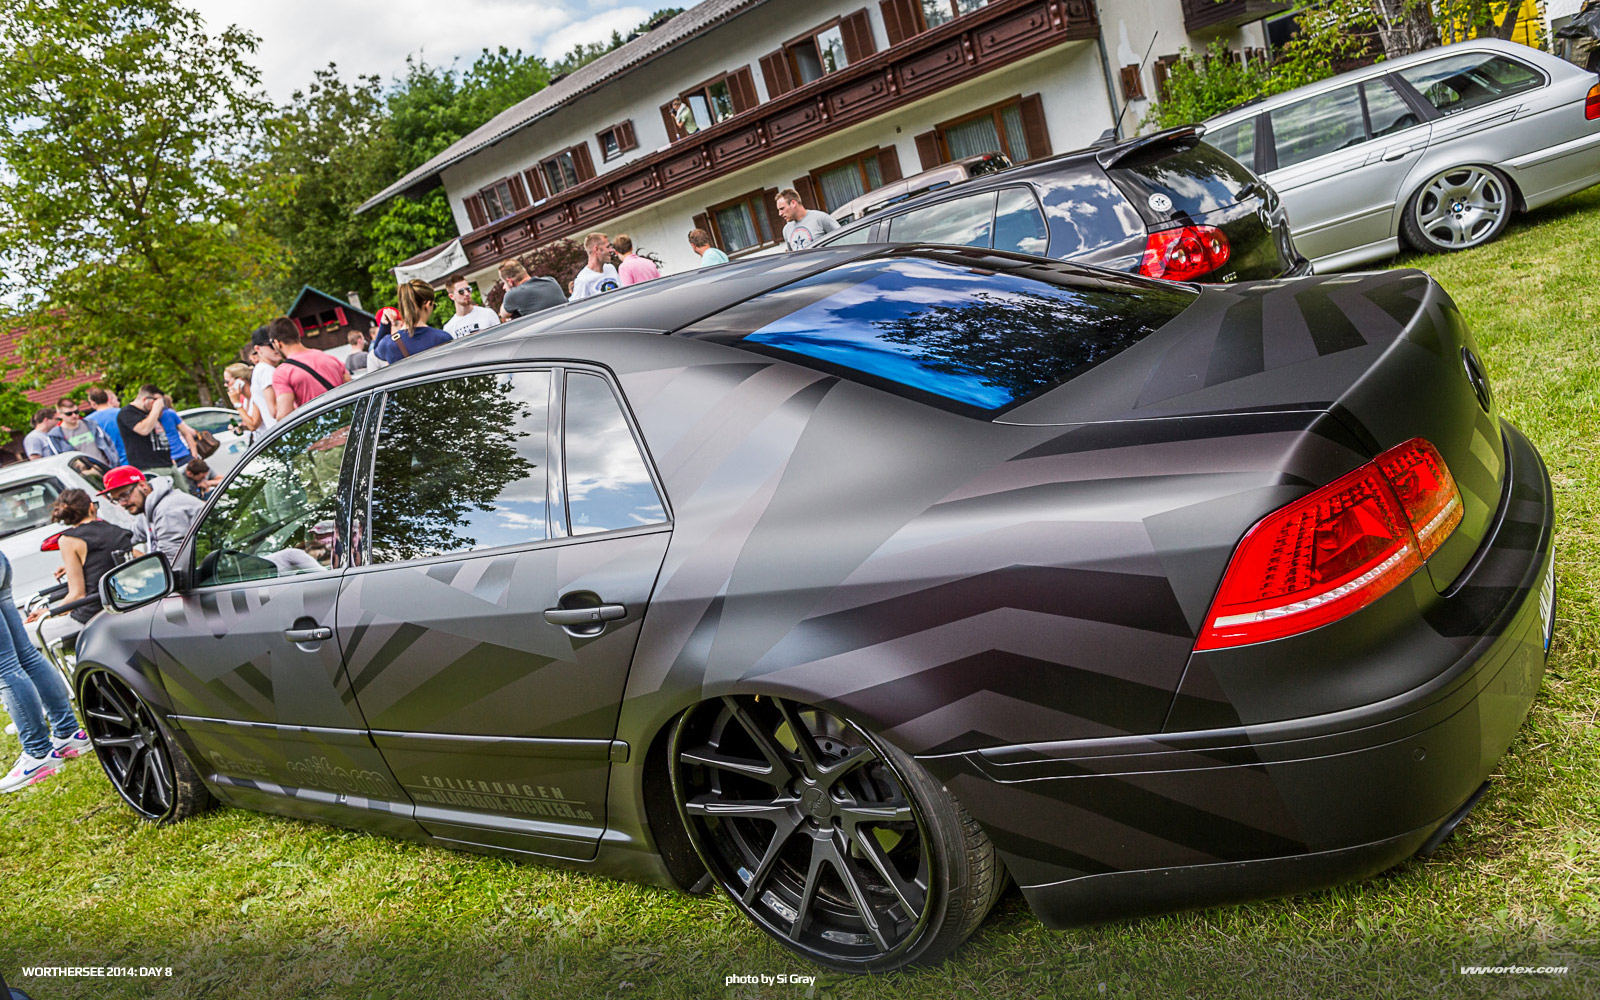 2014-Worthersee-Day-8-Si-Gray-1107